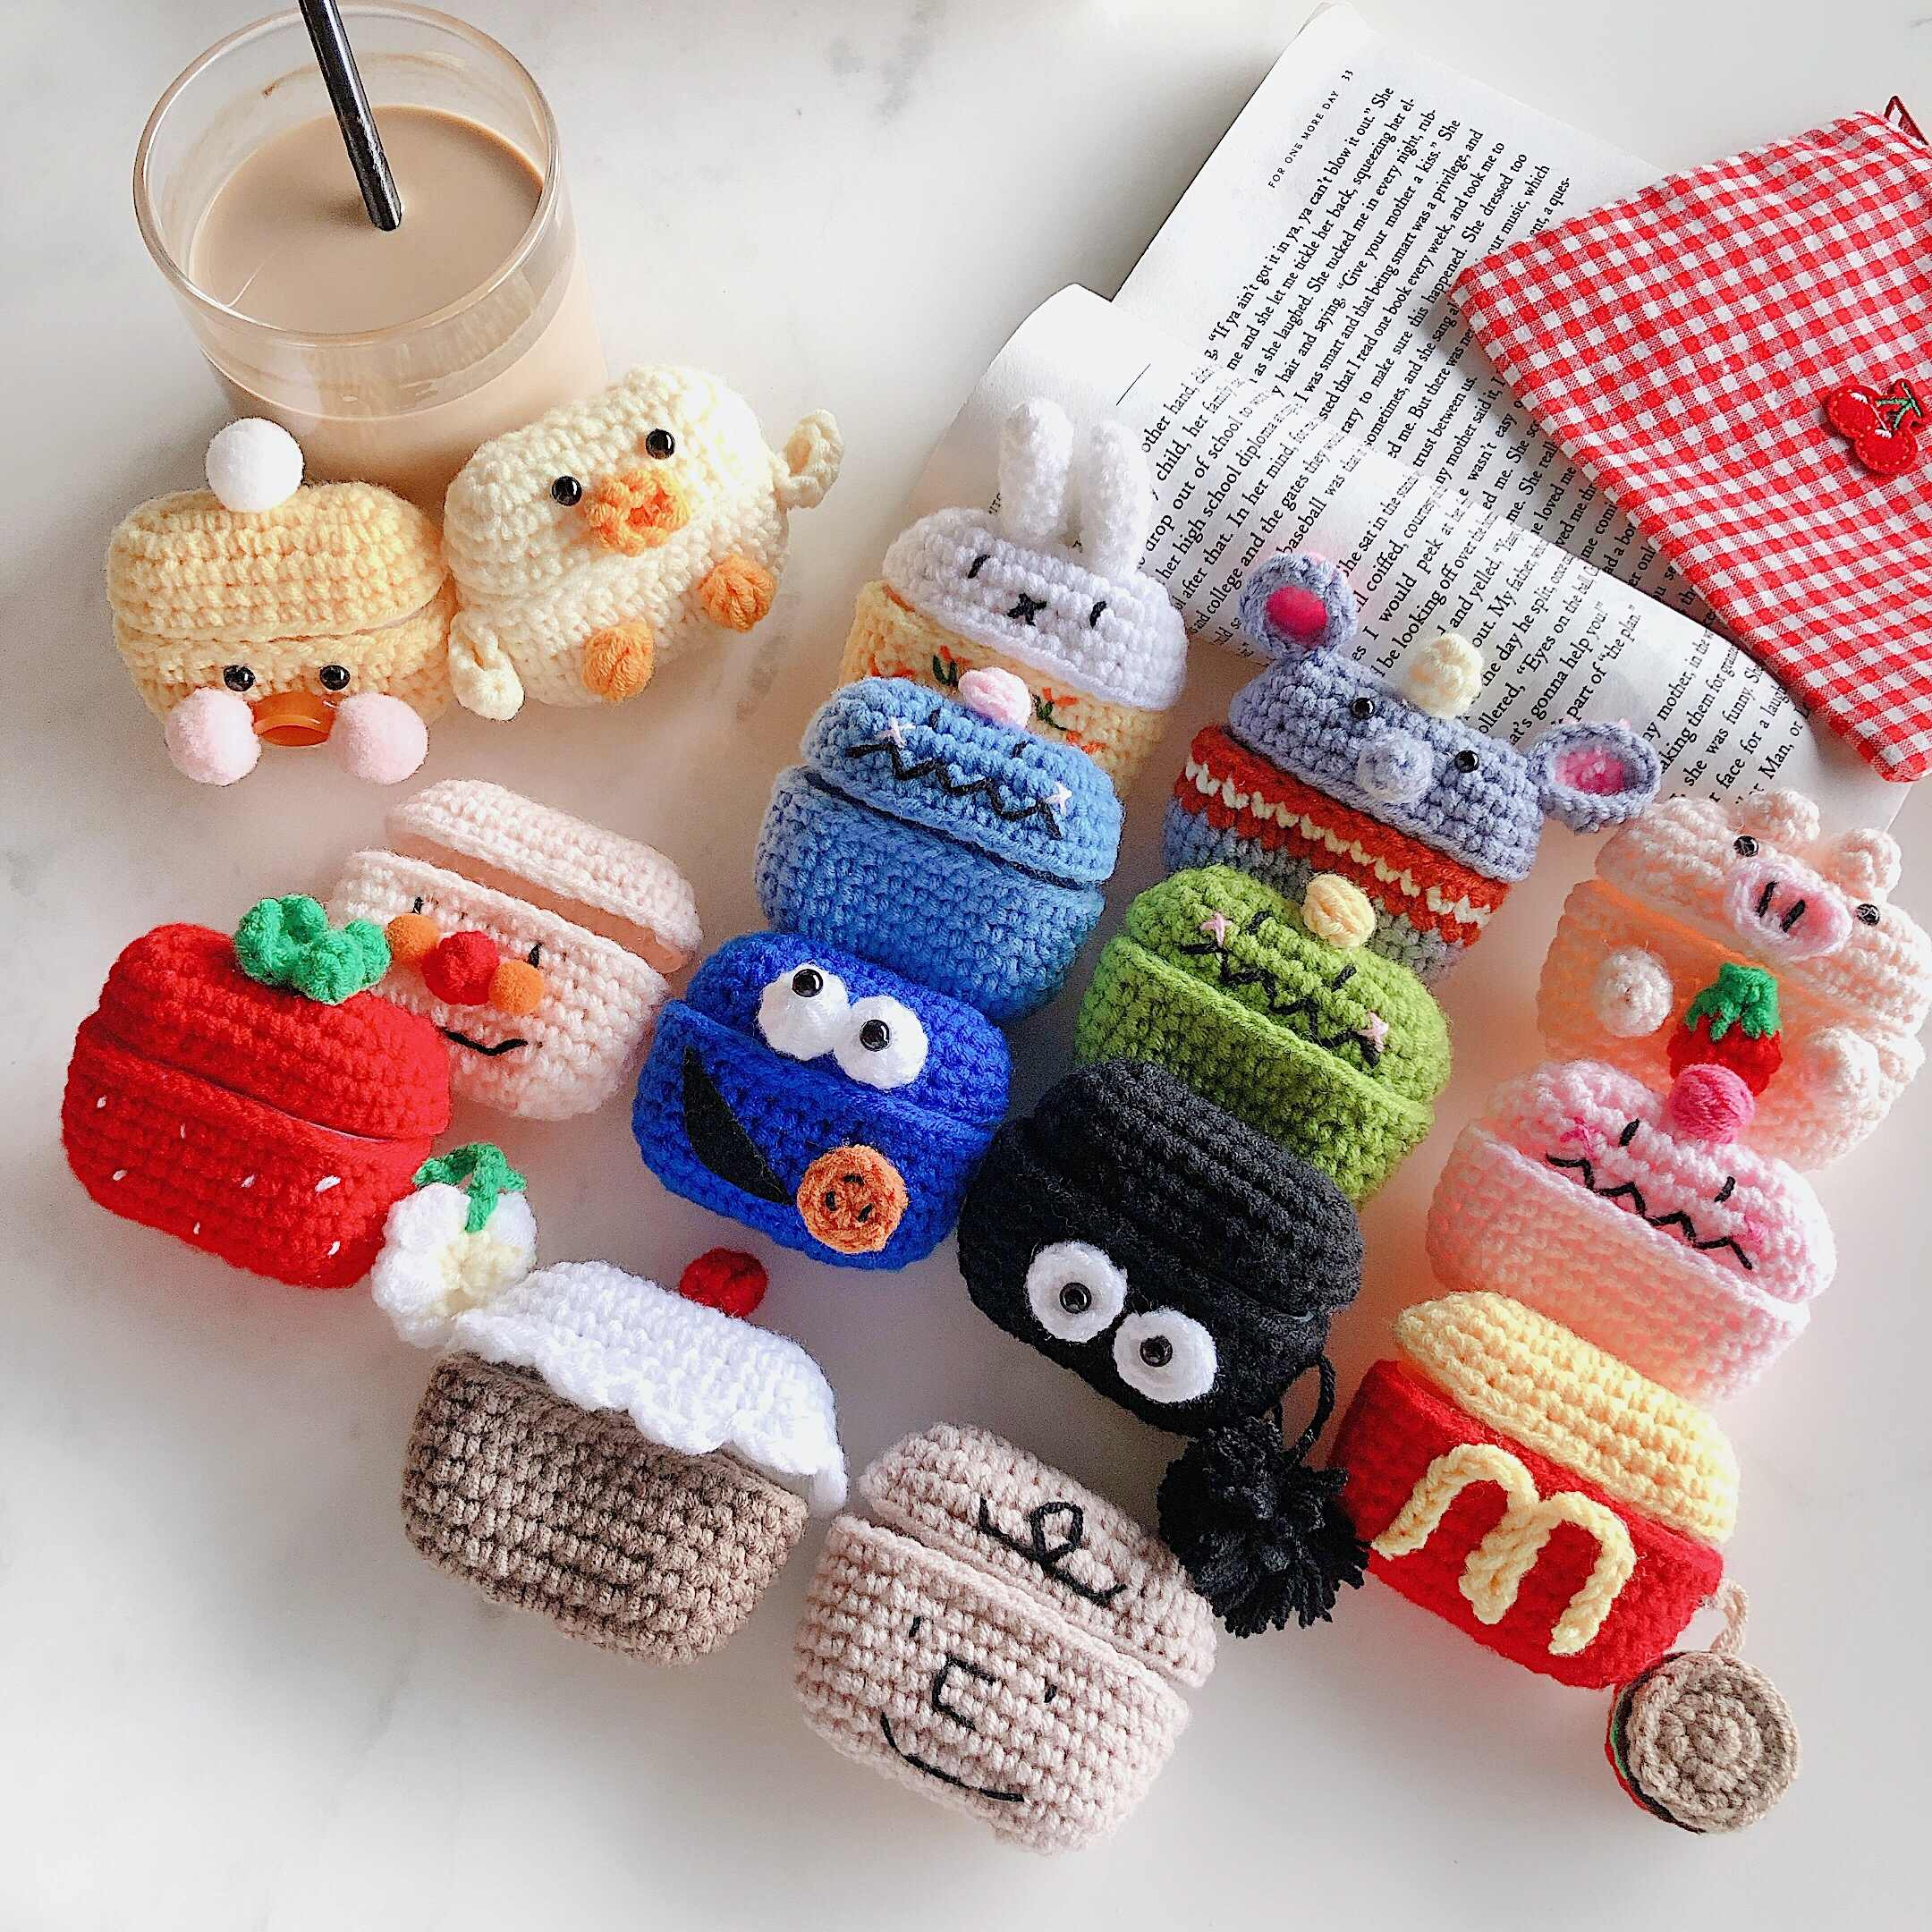 Plush Knitted Earphone Case For AirPods Pro Case Cute Animal Knitting Cover For Apple Air Pods Pro 3 Case Cover Fuzzy Accessorie